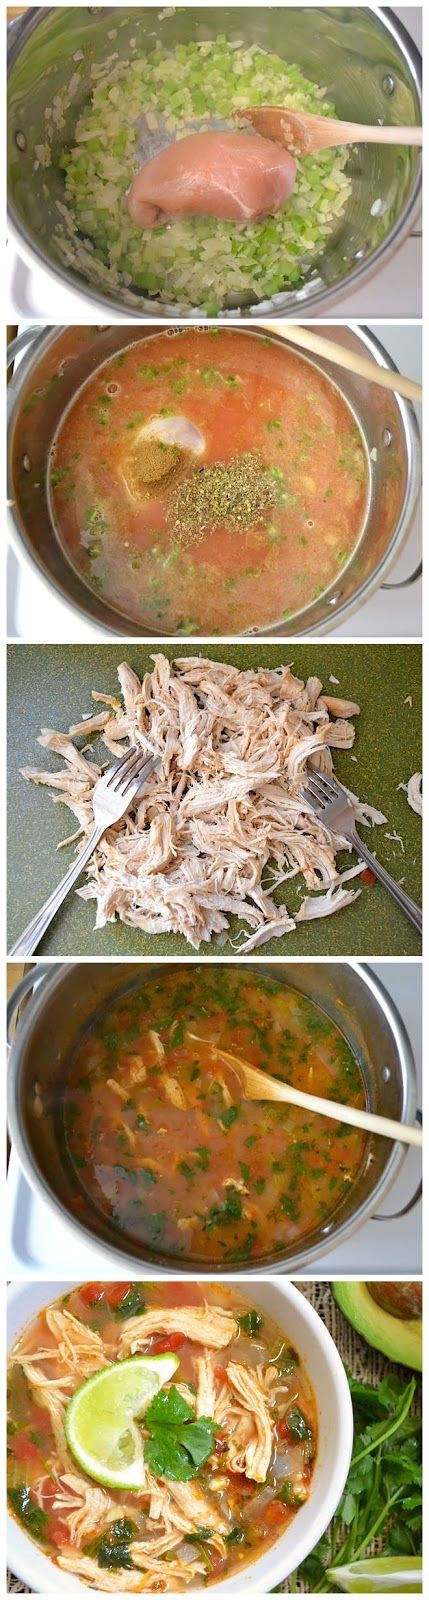 Chicken & Lime Soup by budgetbytes #Soup #Chicken #Lime #Healthy